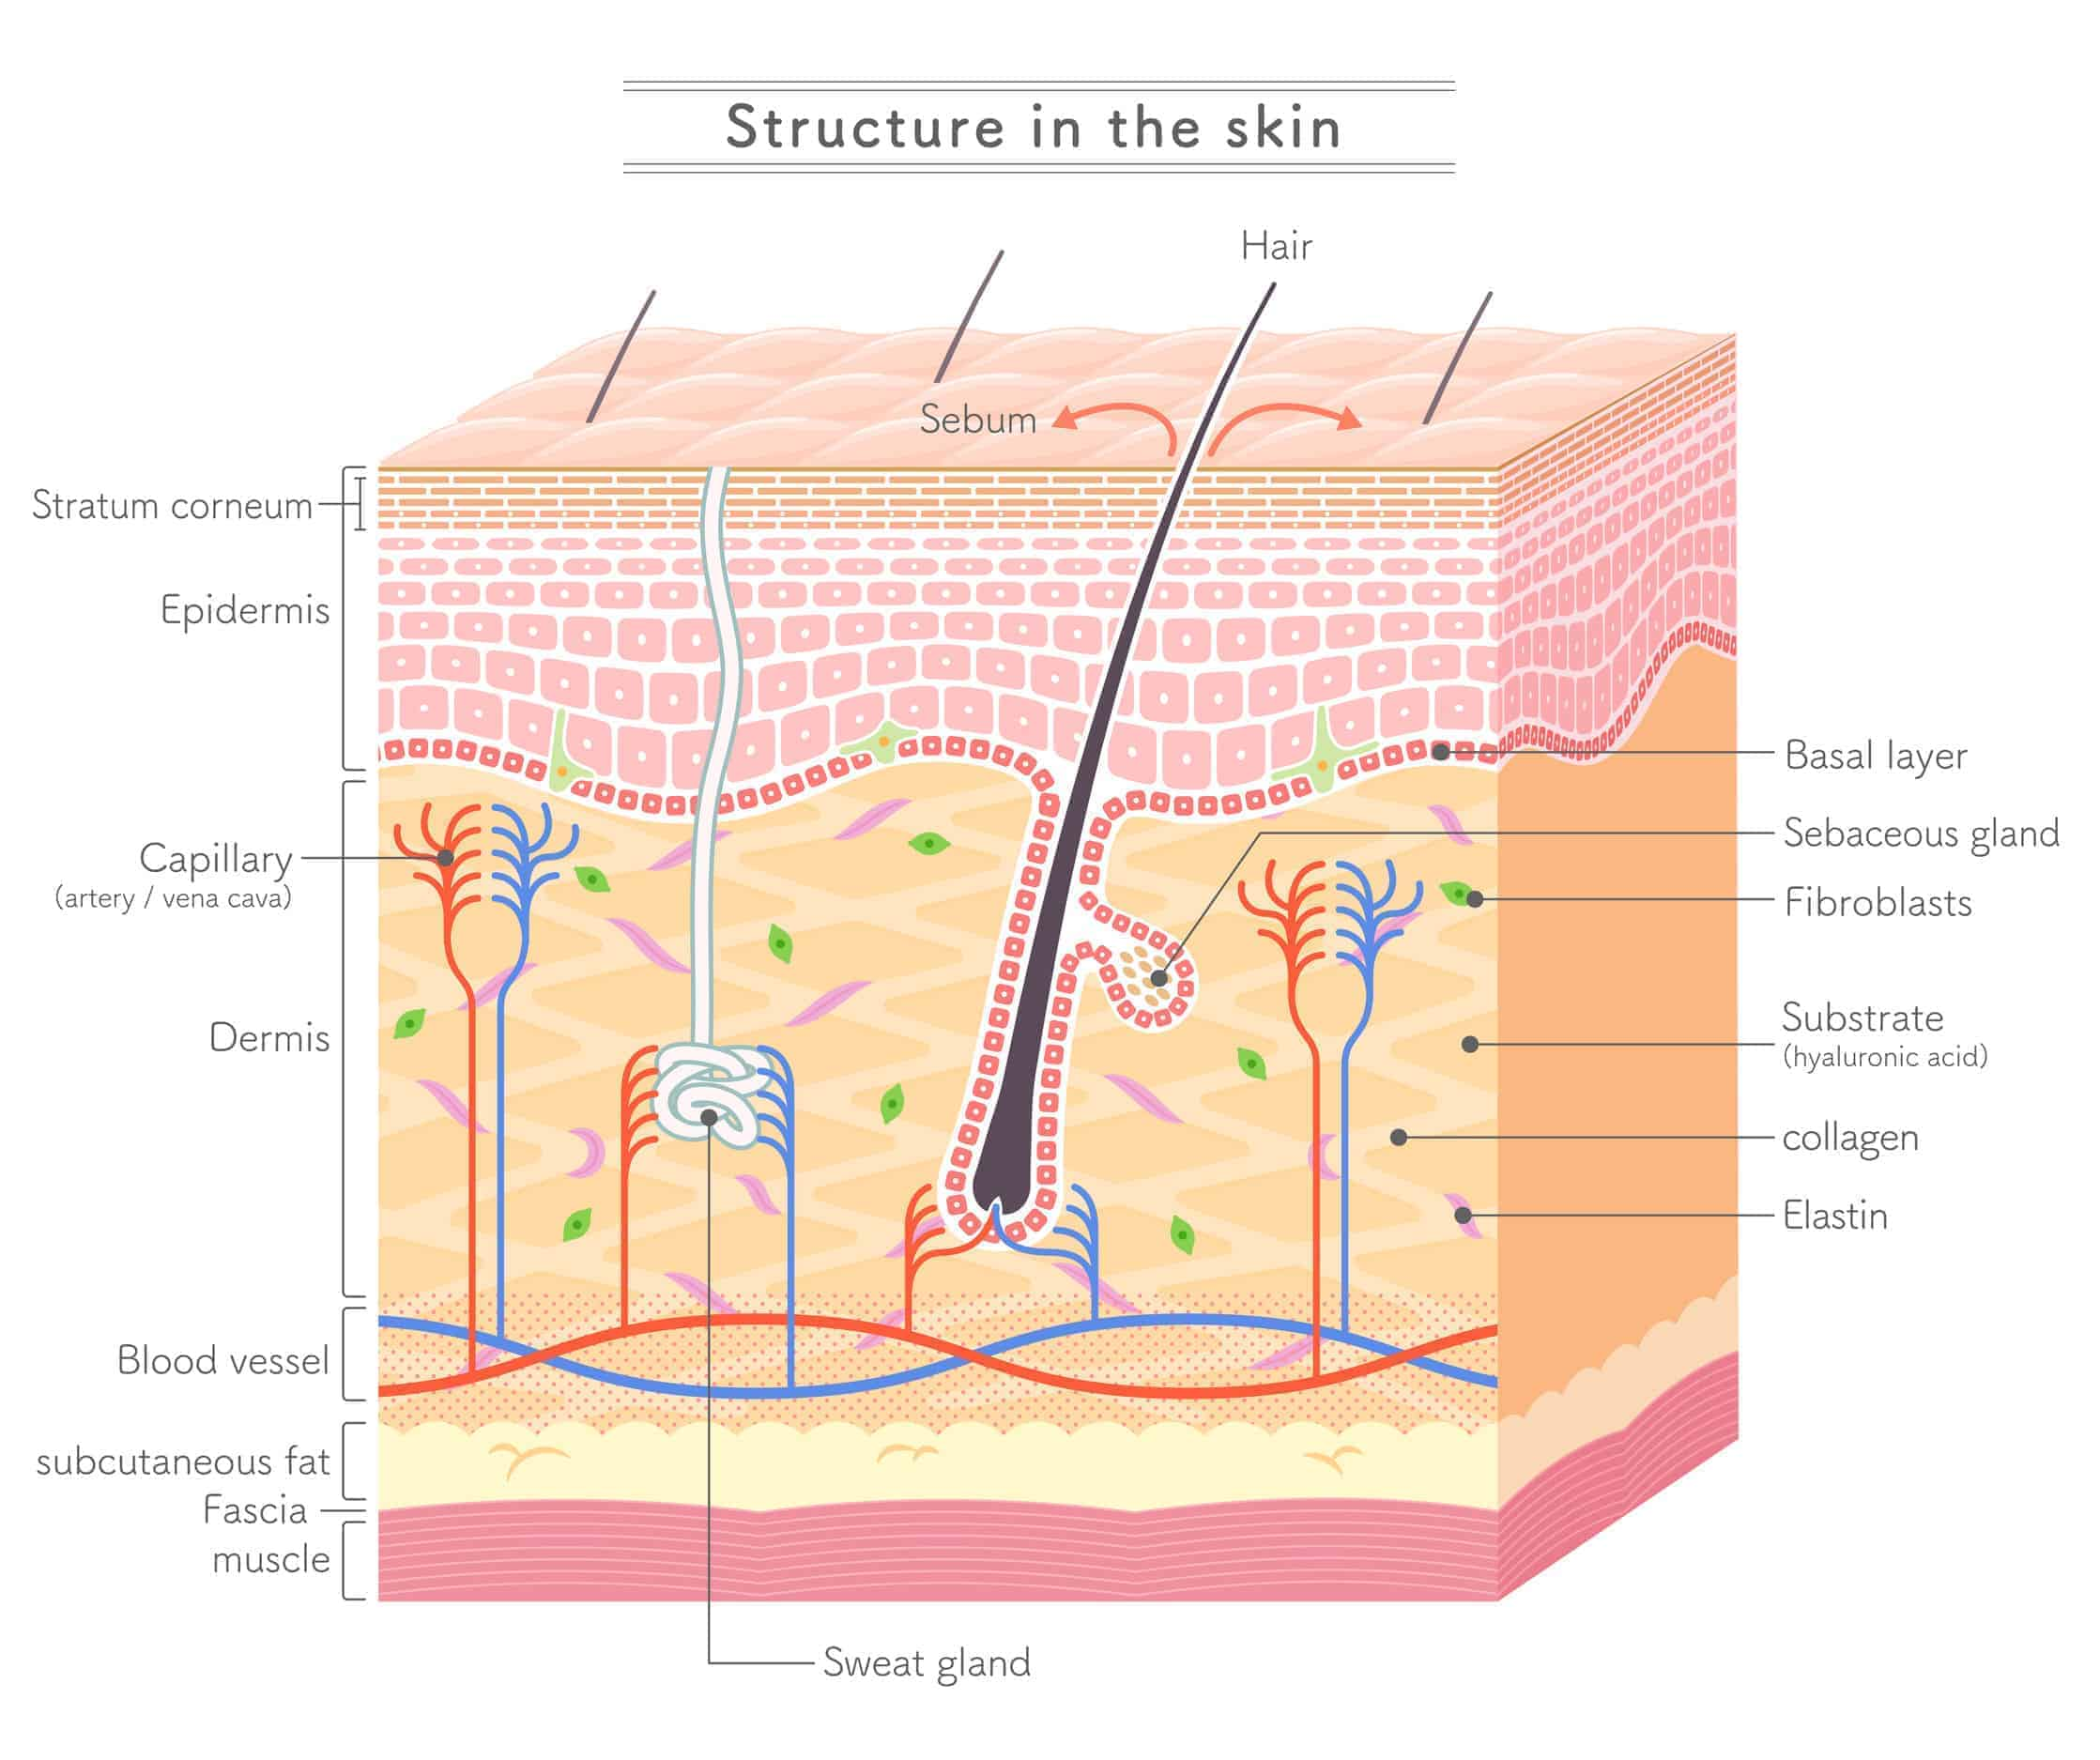 Structure in the skin